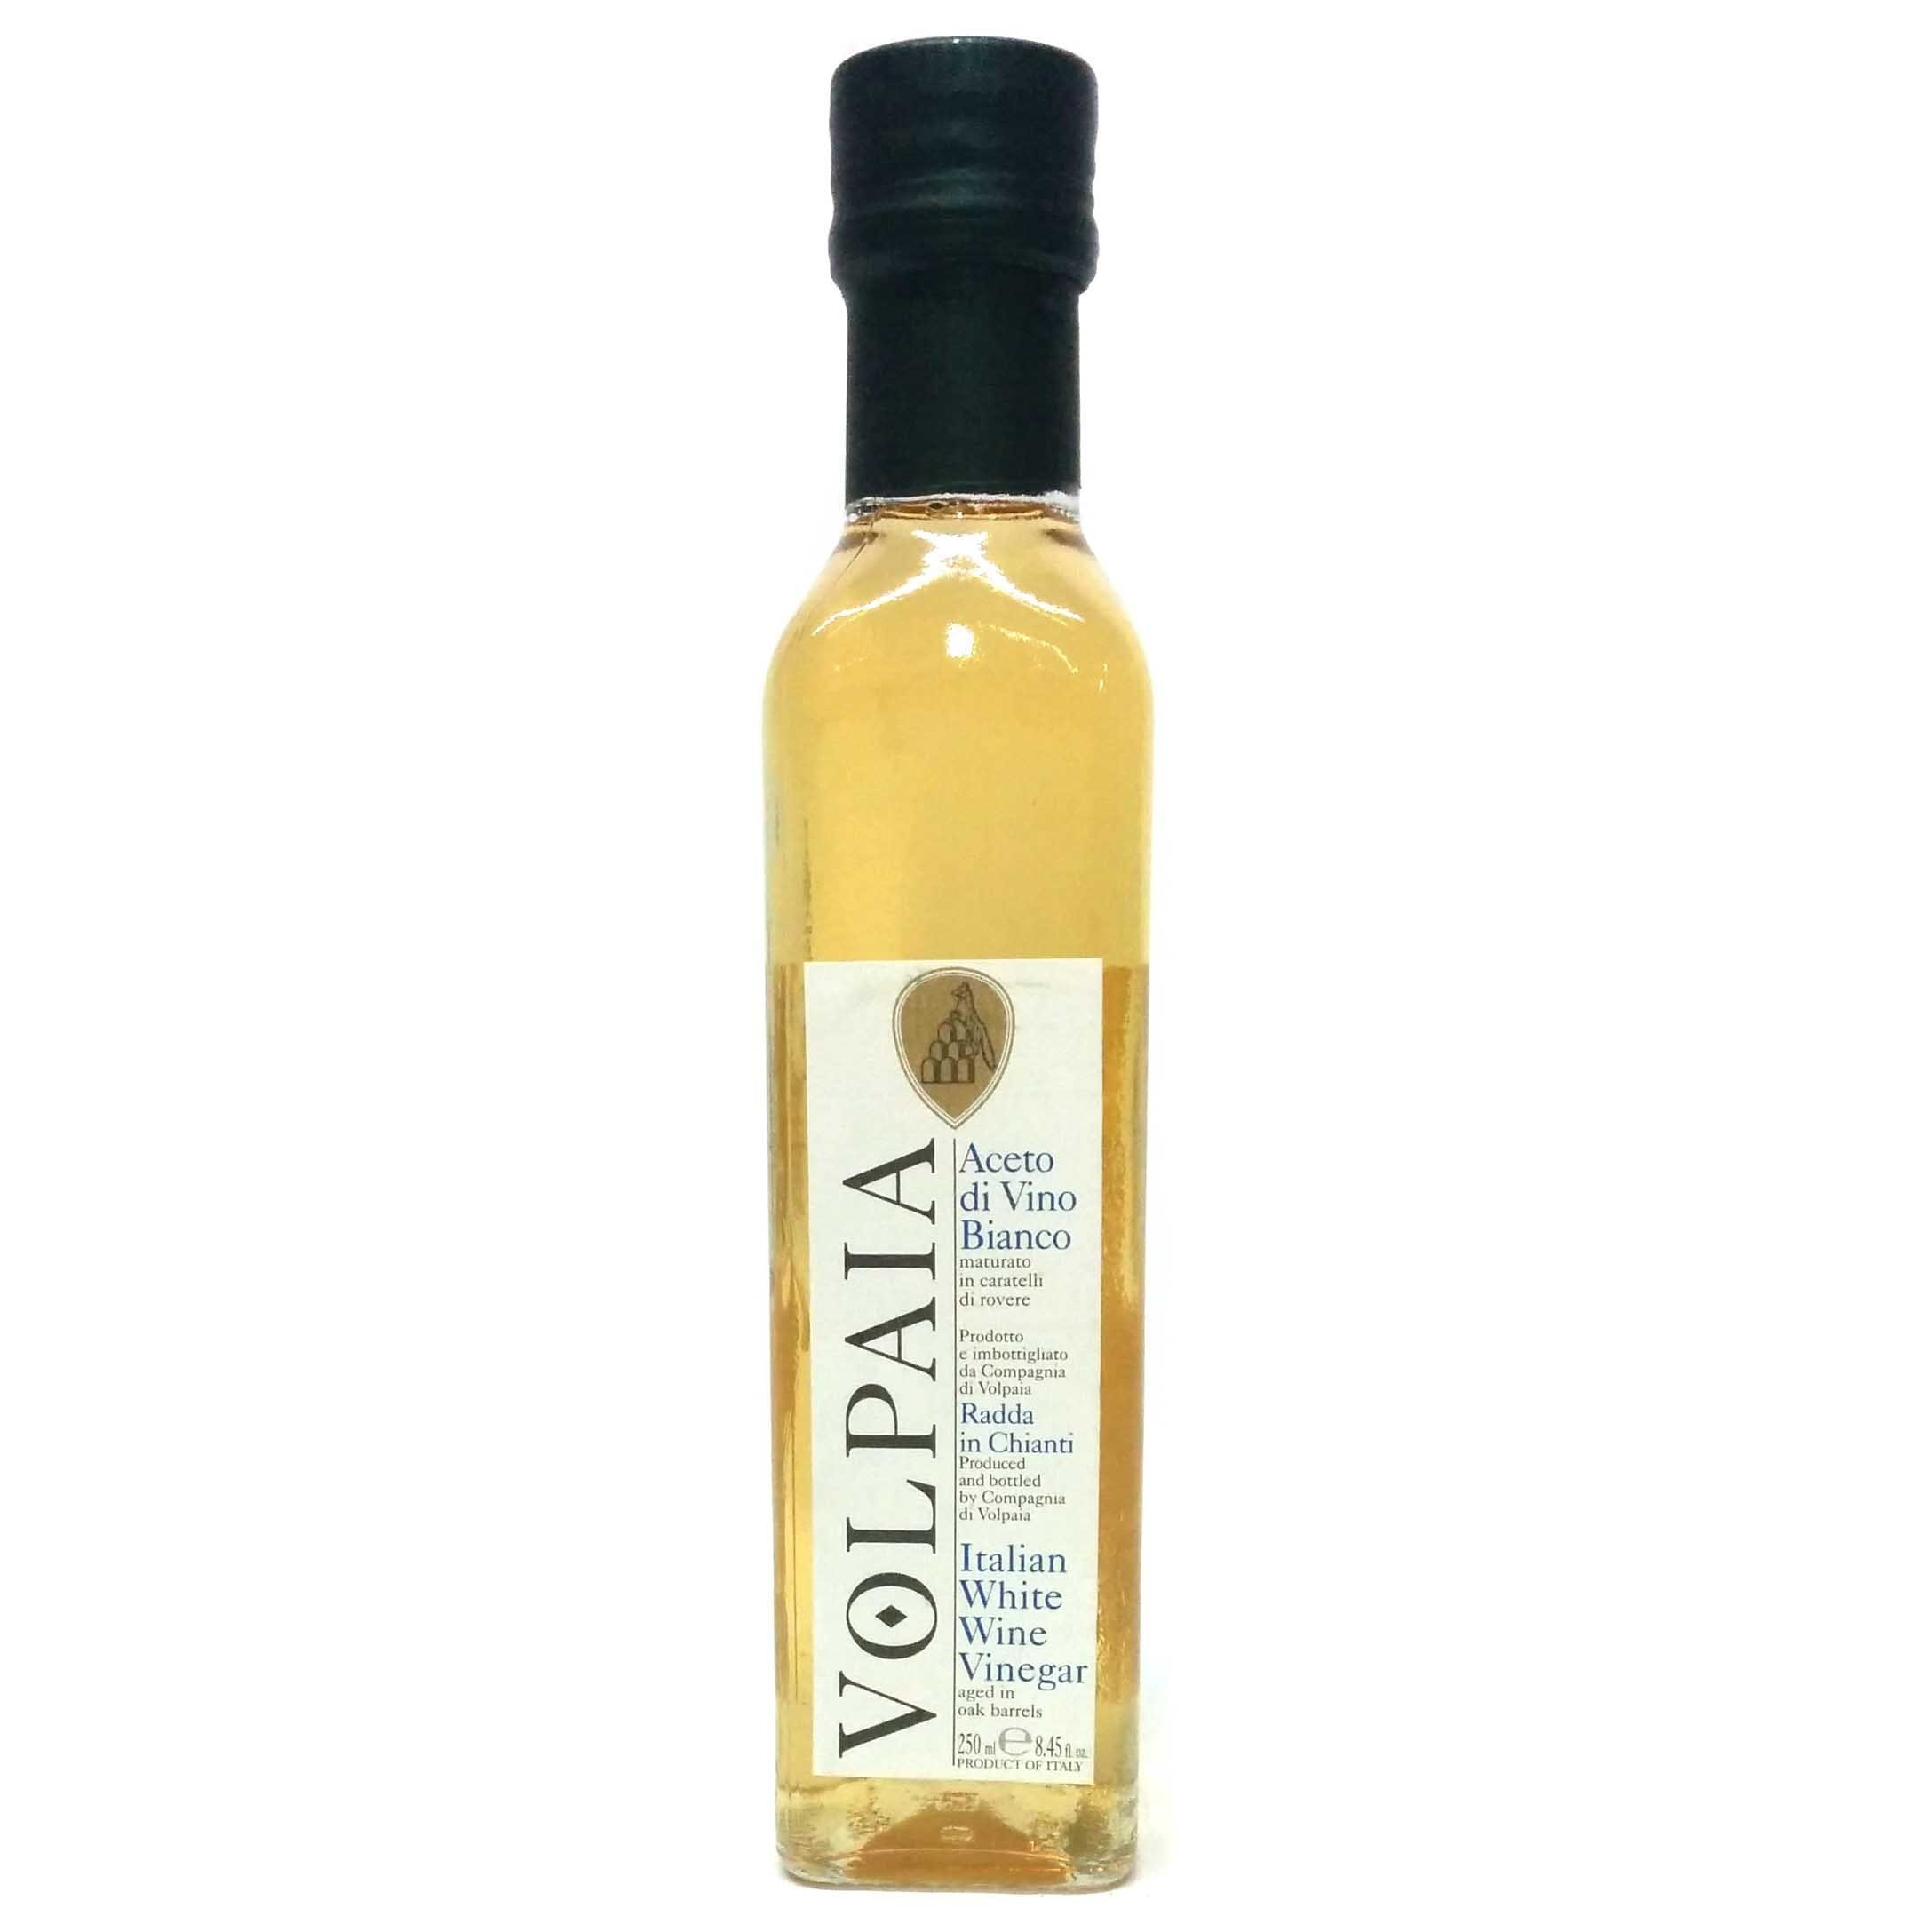 Castello di Volpaia White Wine Vinegar - 250ml by Castello di Volpaia